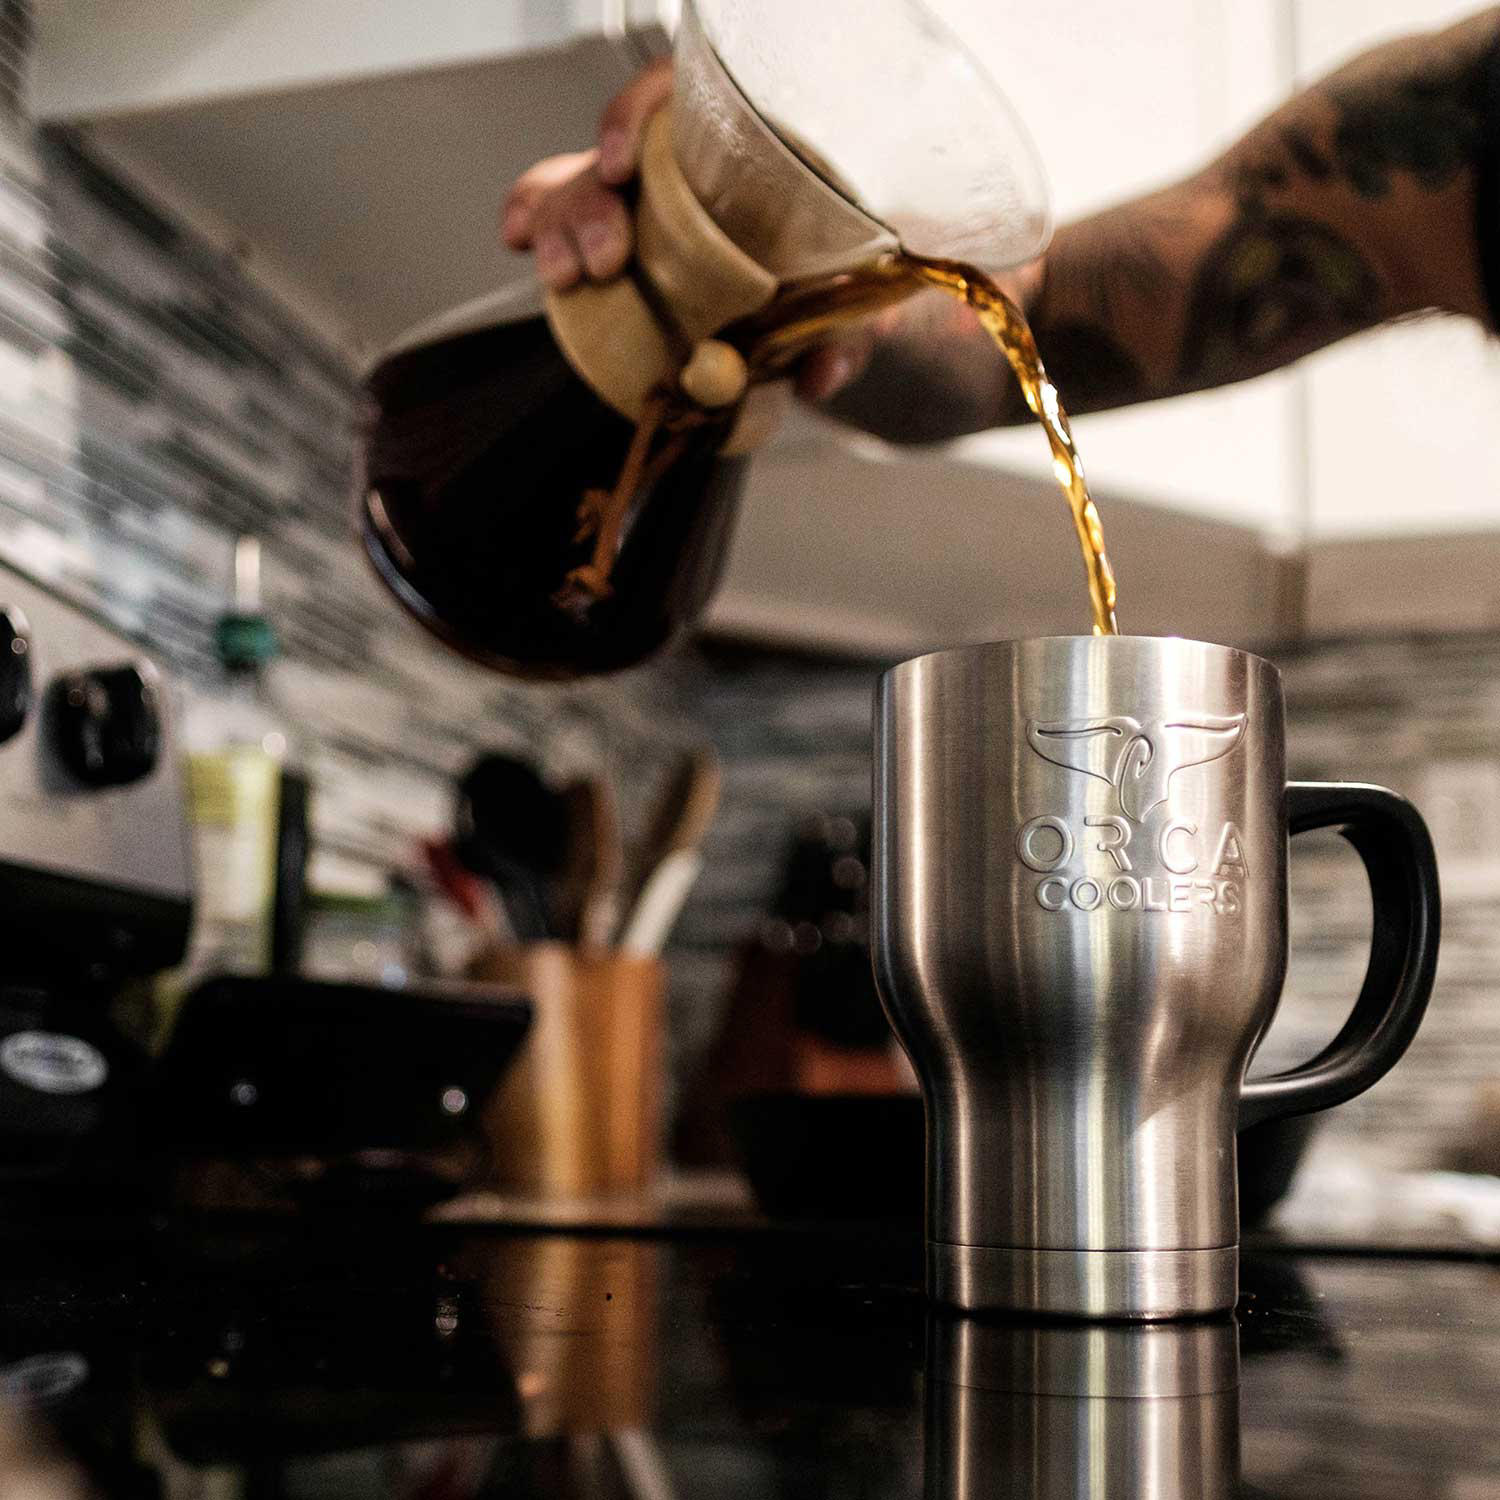 ORCA Café Stainless Steel Tumbler – 2-Pack